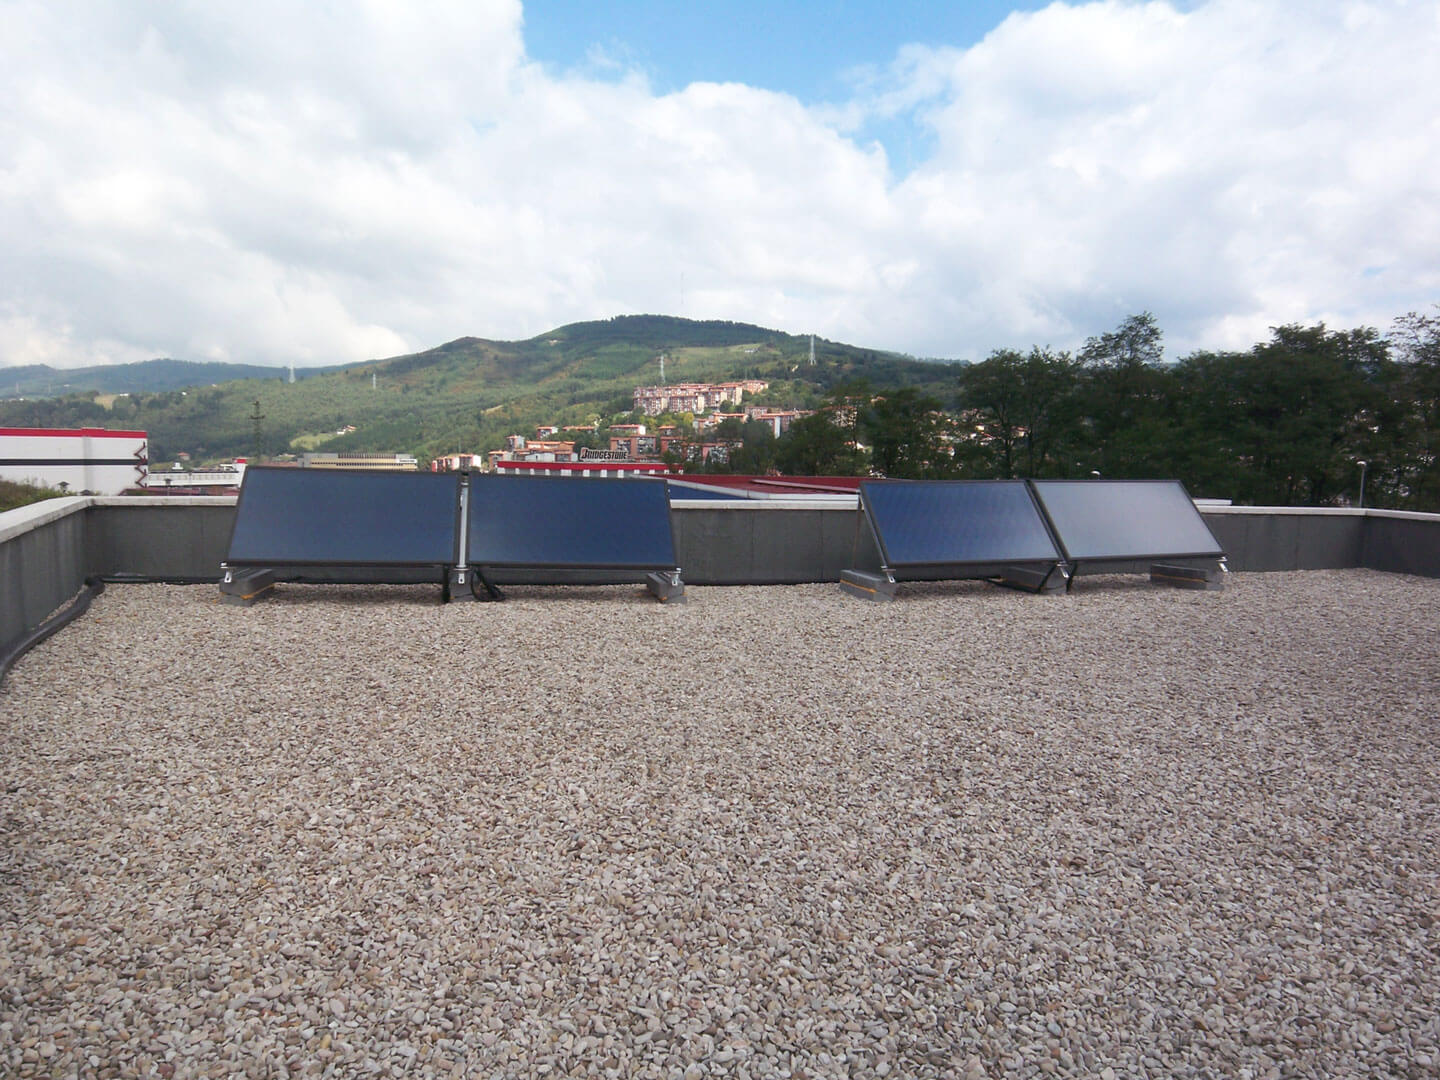 installation solaire thermique immeuble - installation-solaire-thermique-immeuble -